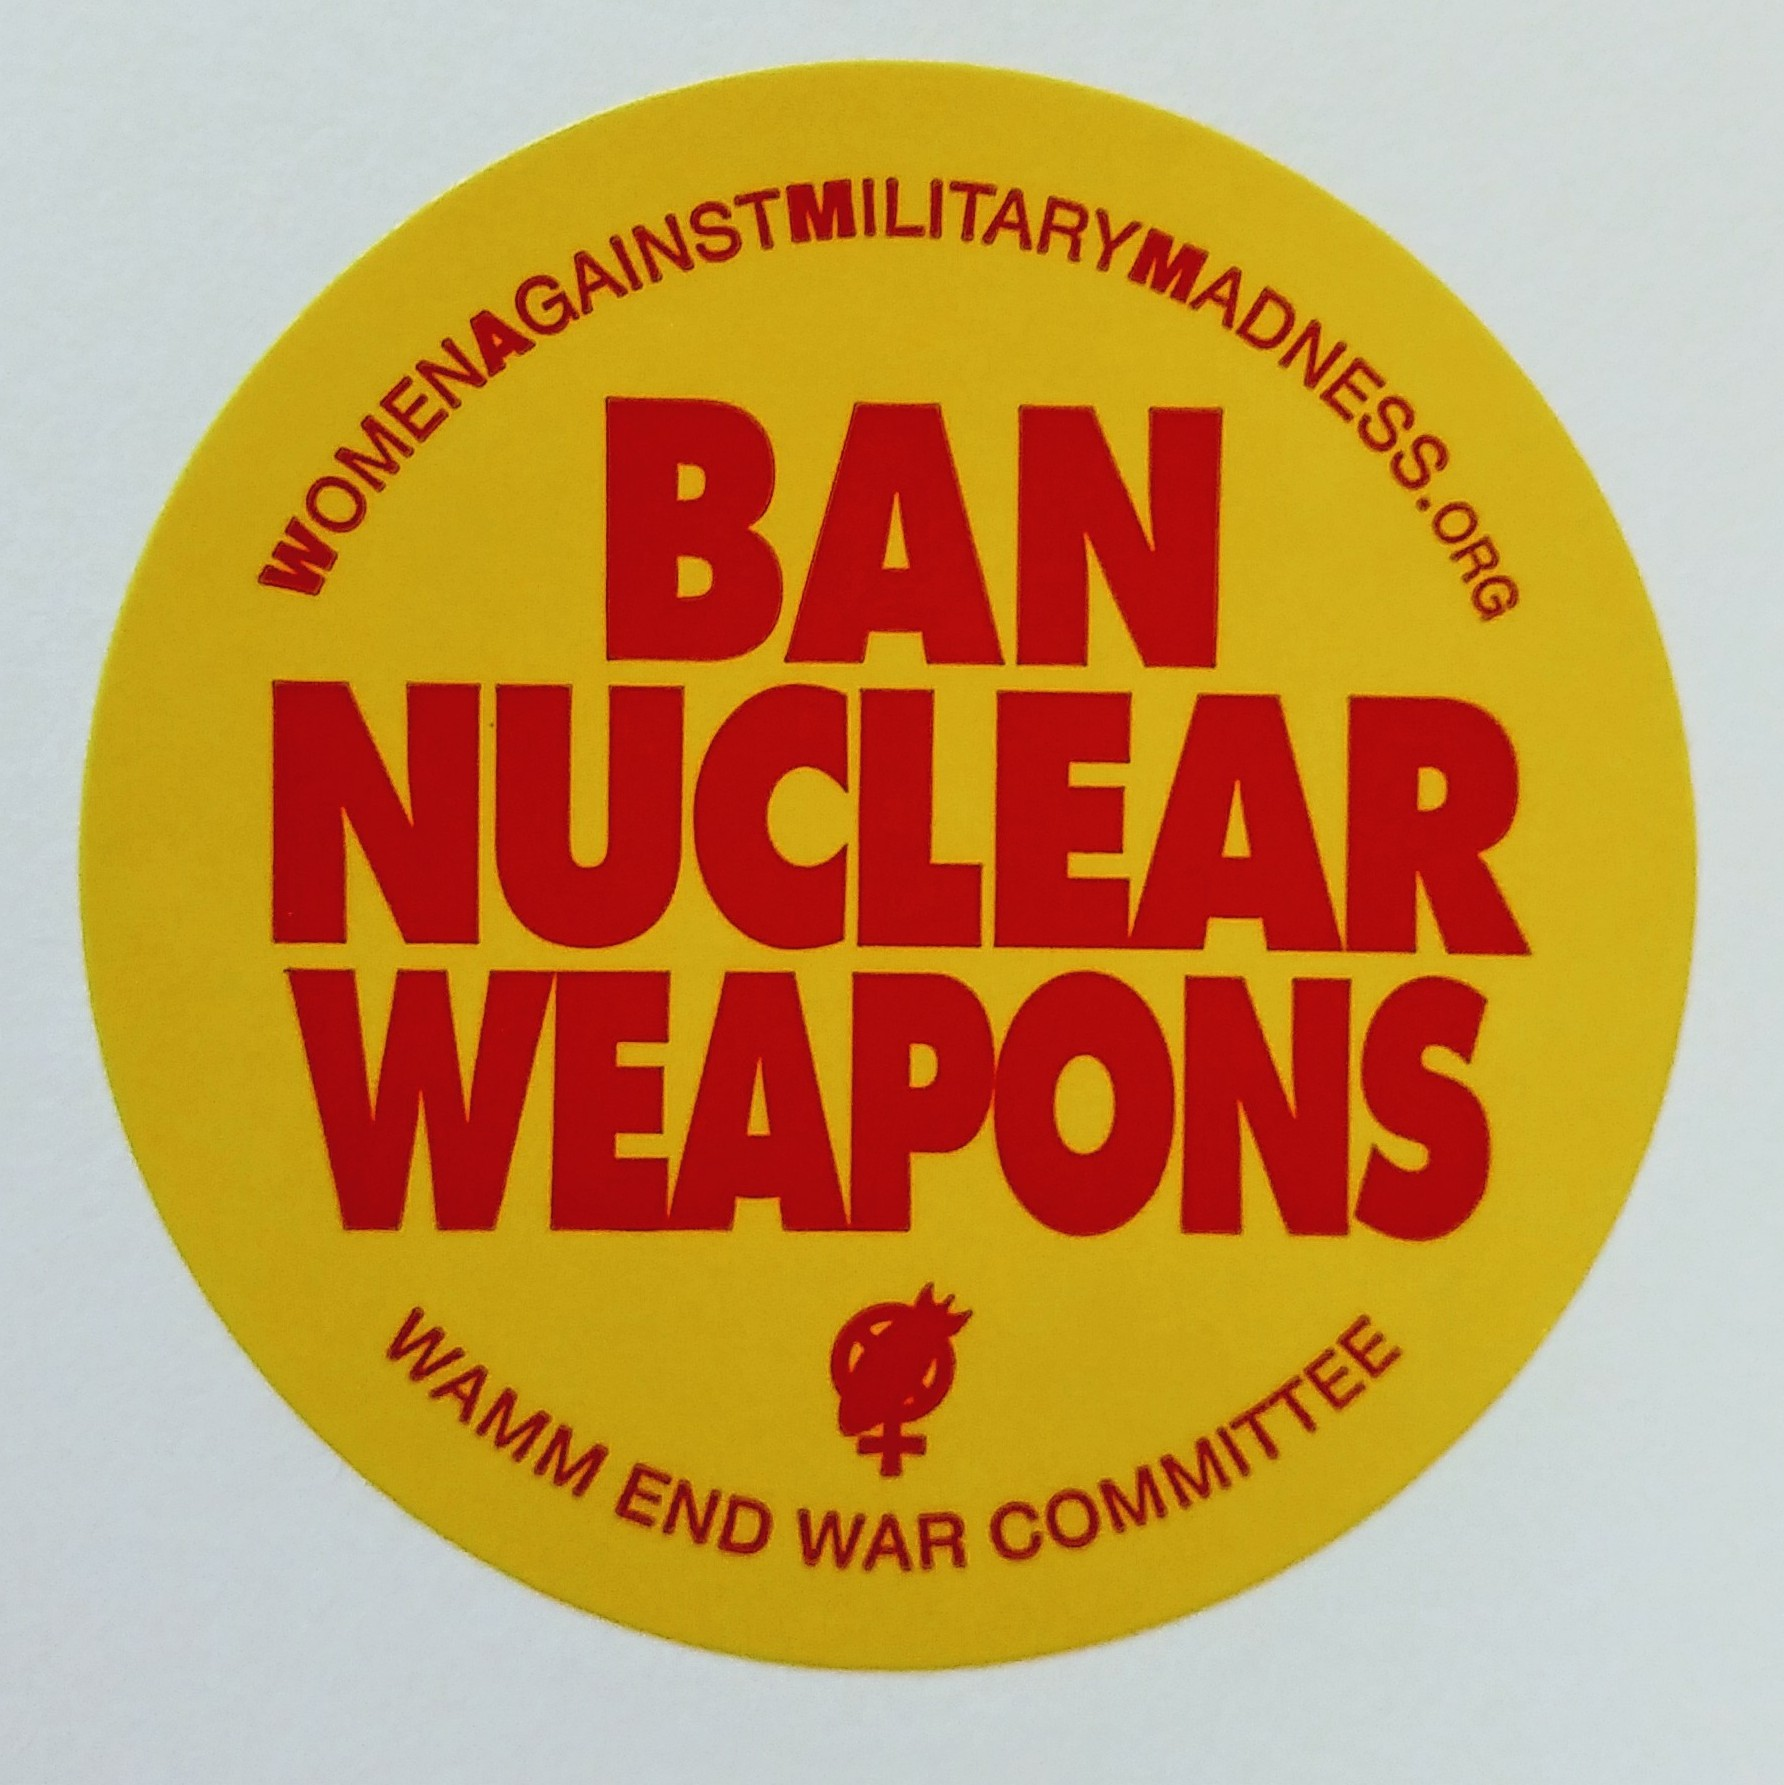 Ban Nuclear Weapons Stickers.jpg